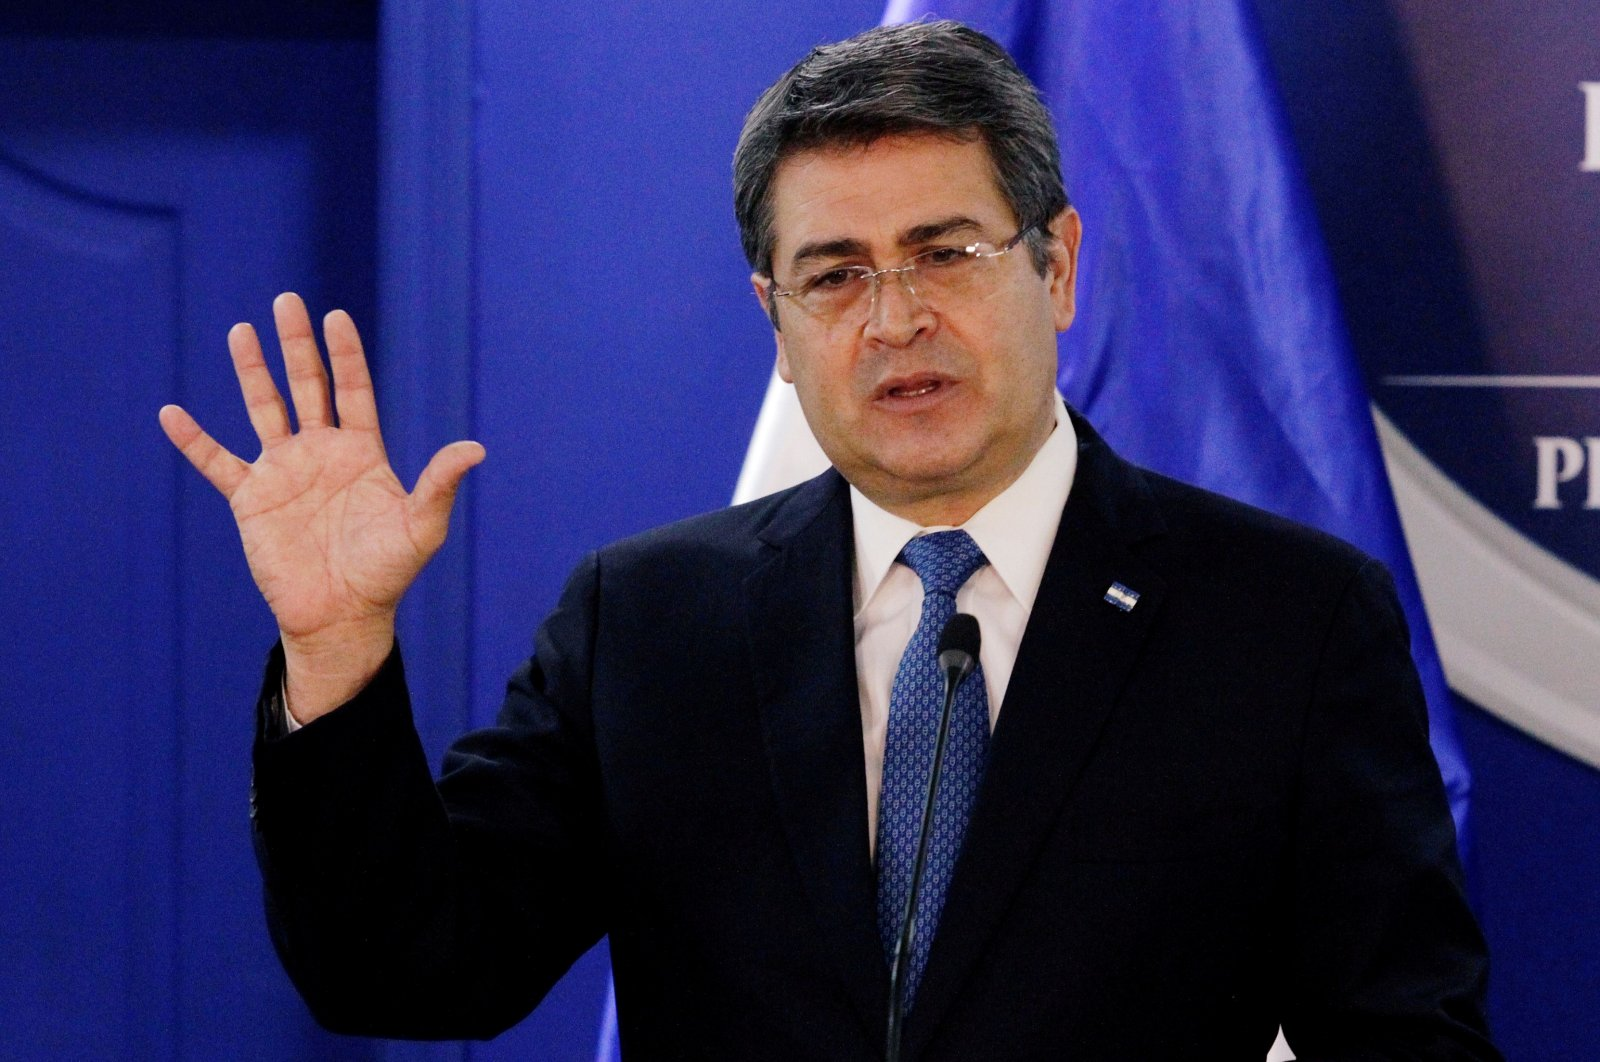 Honduras' President Juan Orlando Hernandez speaks during a joint message with U.S. Department of Homeland Security (DHS) acting Secretary Chad Wolf (not pictured), at the Presidential House in Tegucigalpa, Honduras Jan. 9, 2020. (Reuters Photo)